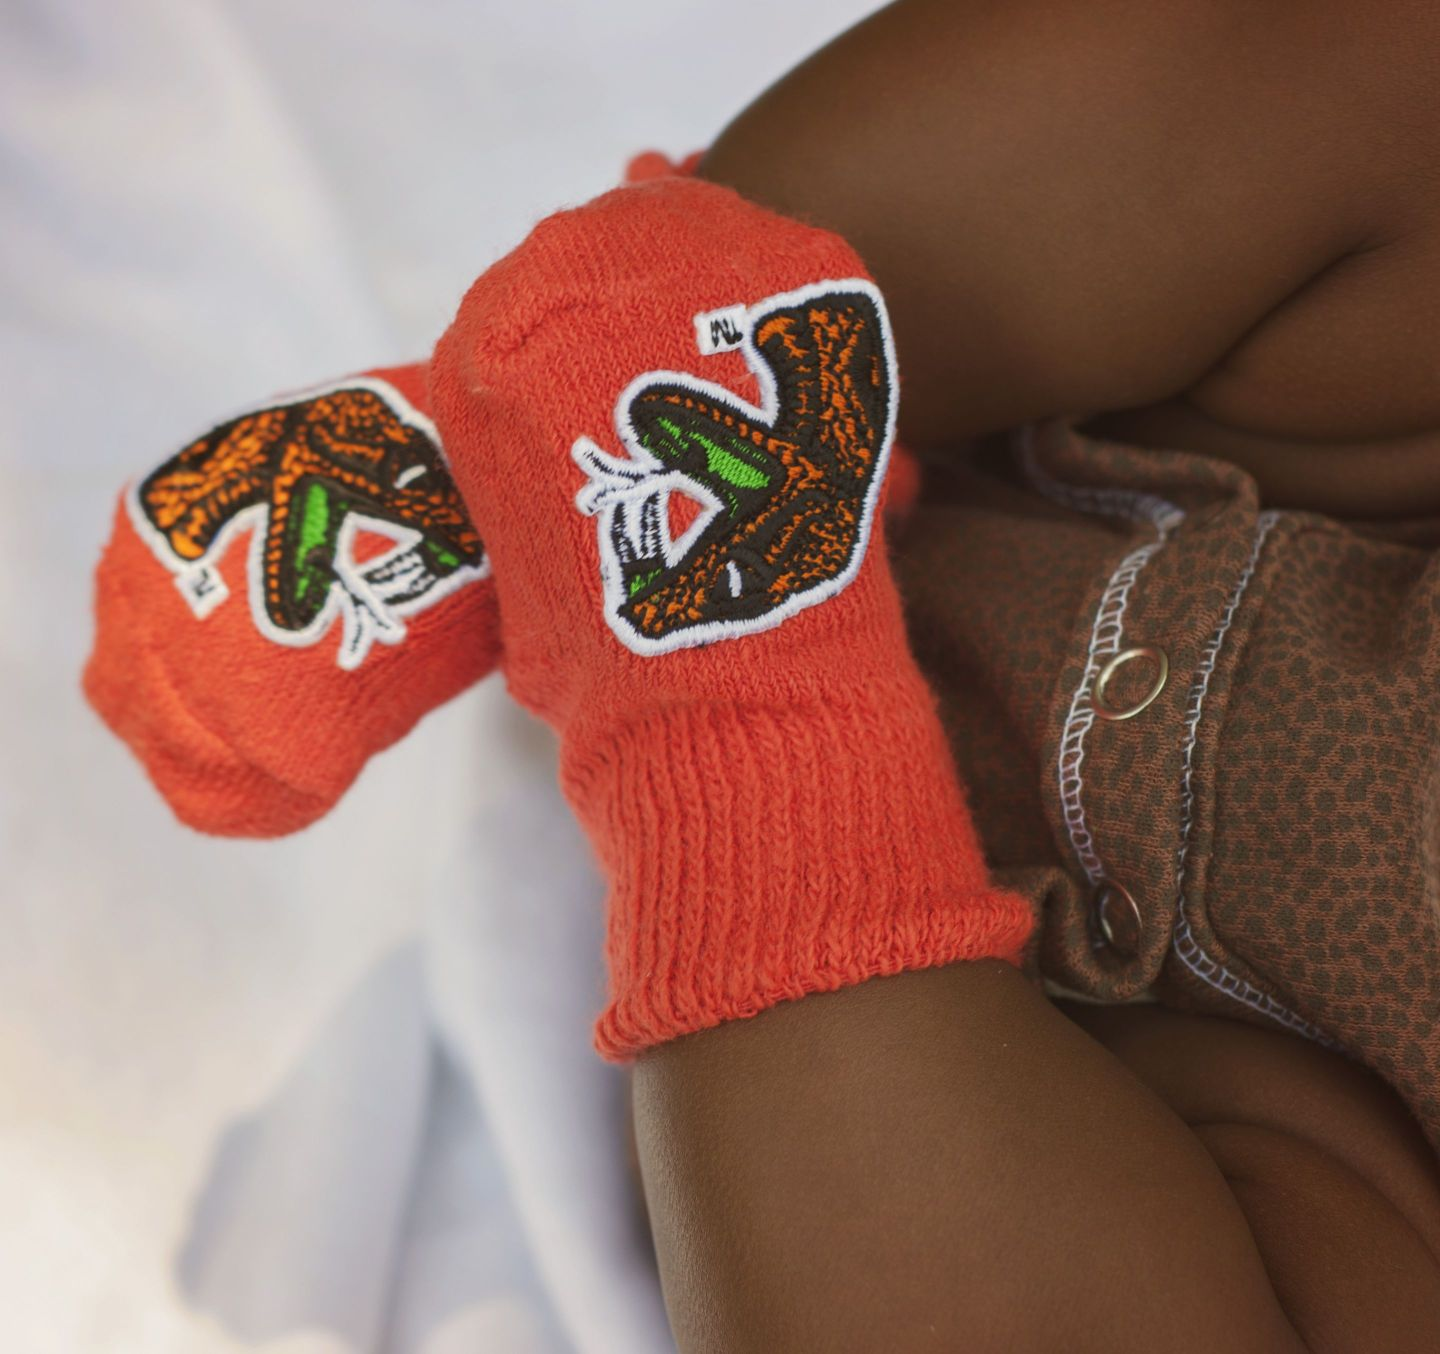 HBCU_Baby Black Owned Baby Clothing Lines You Need to Support!